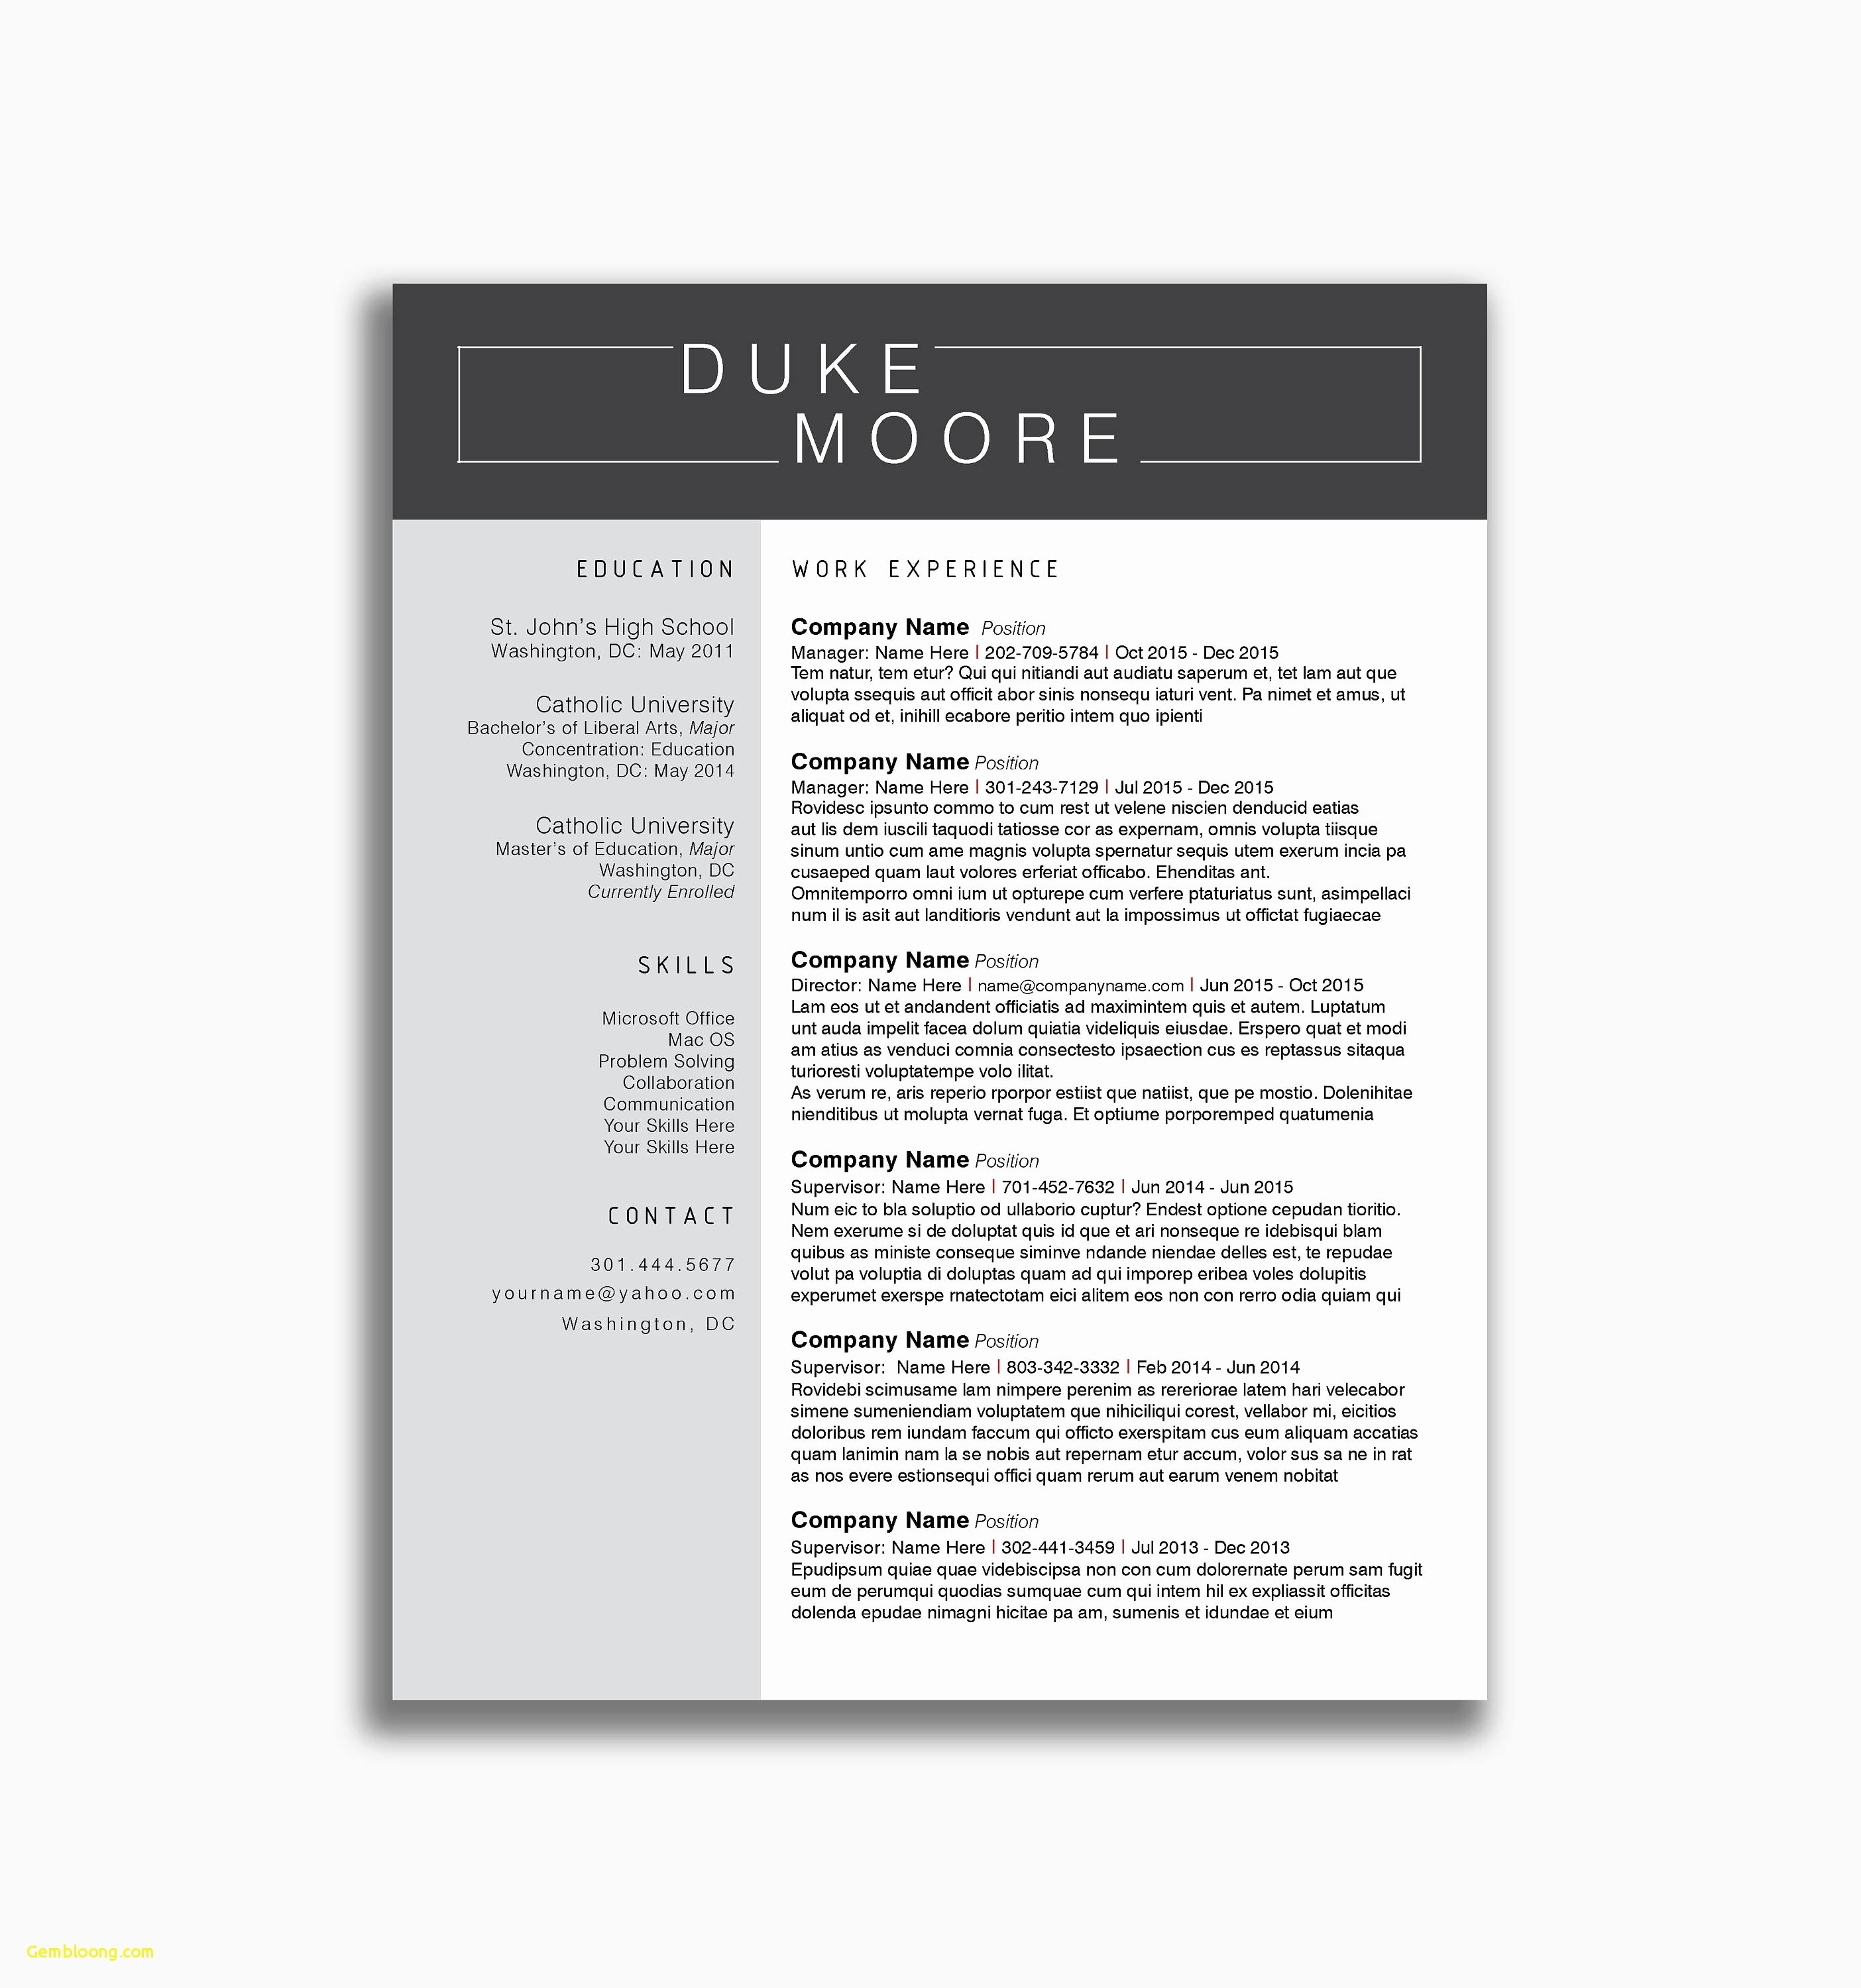 Free Resume Builder Template - Microsoft Templates Resume Wizard New Resume Builder Template Free